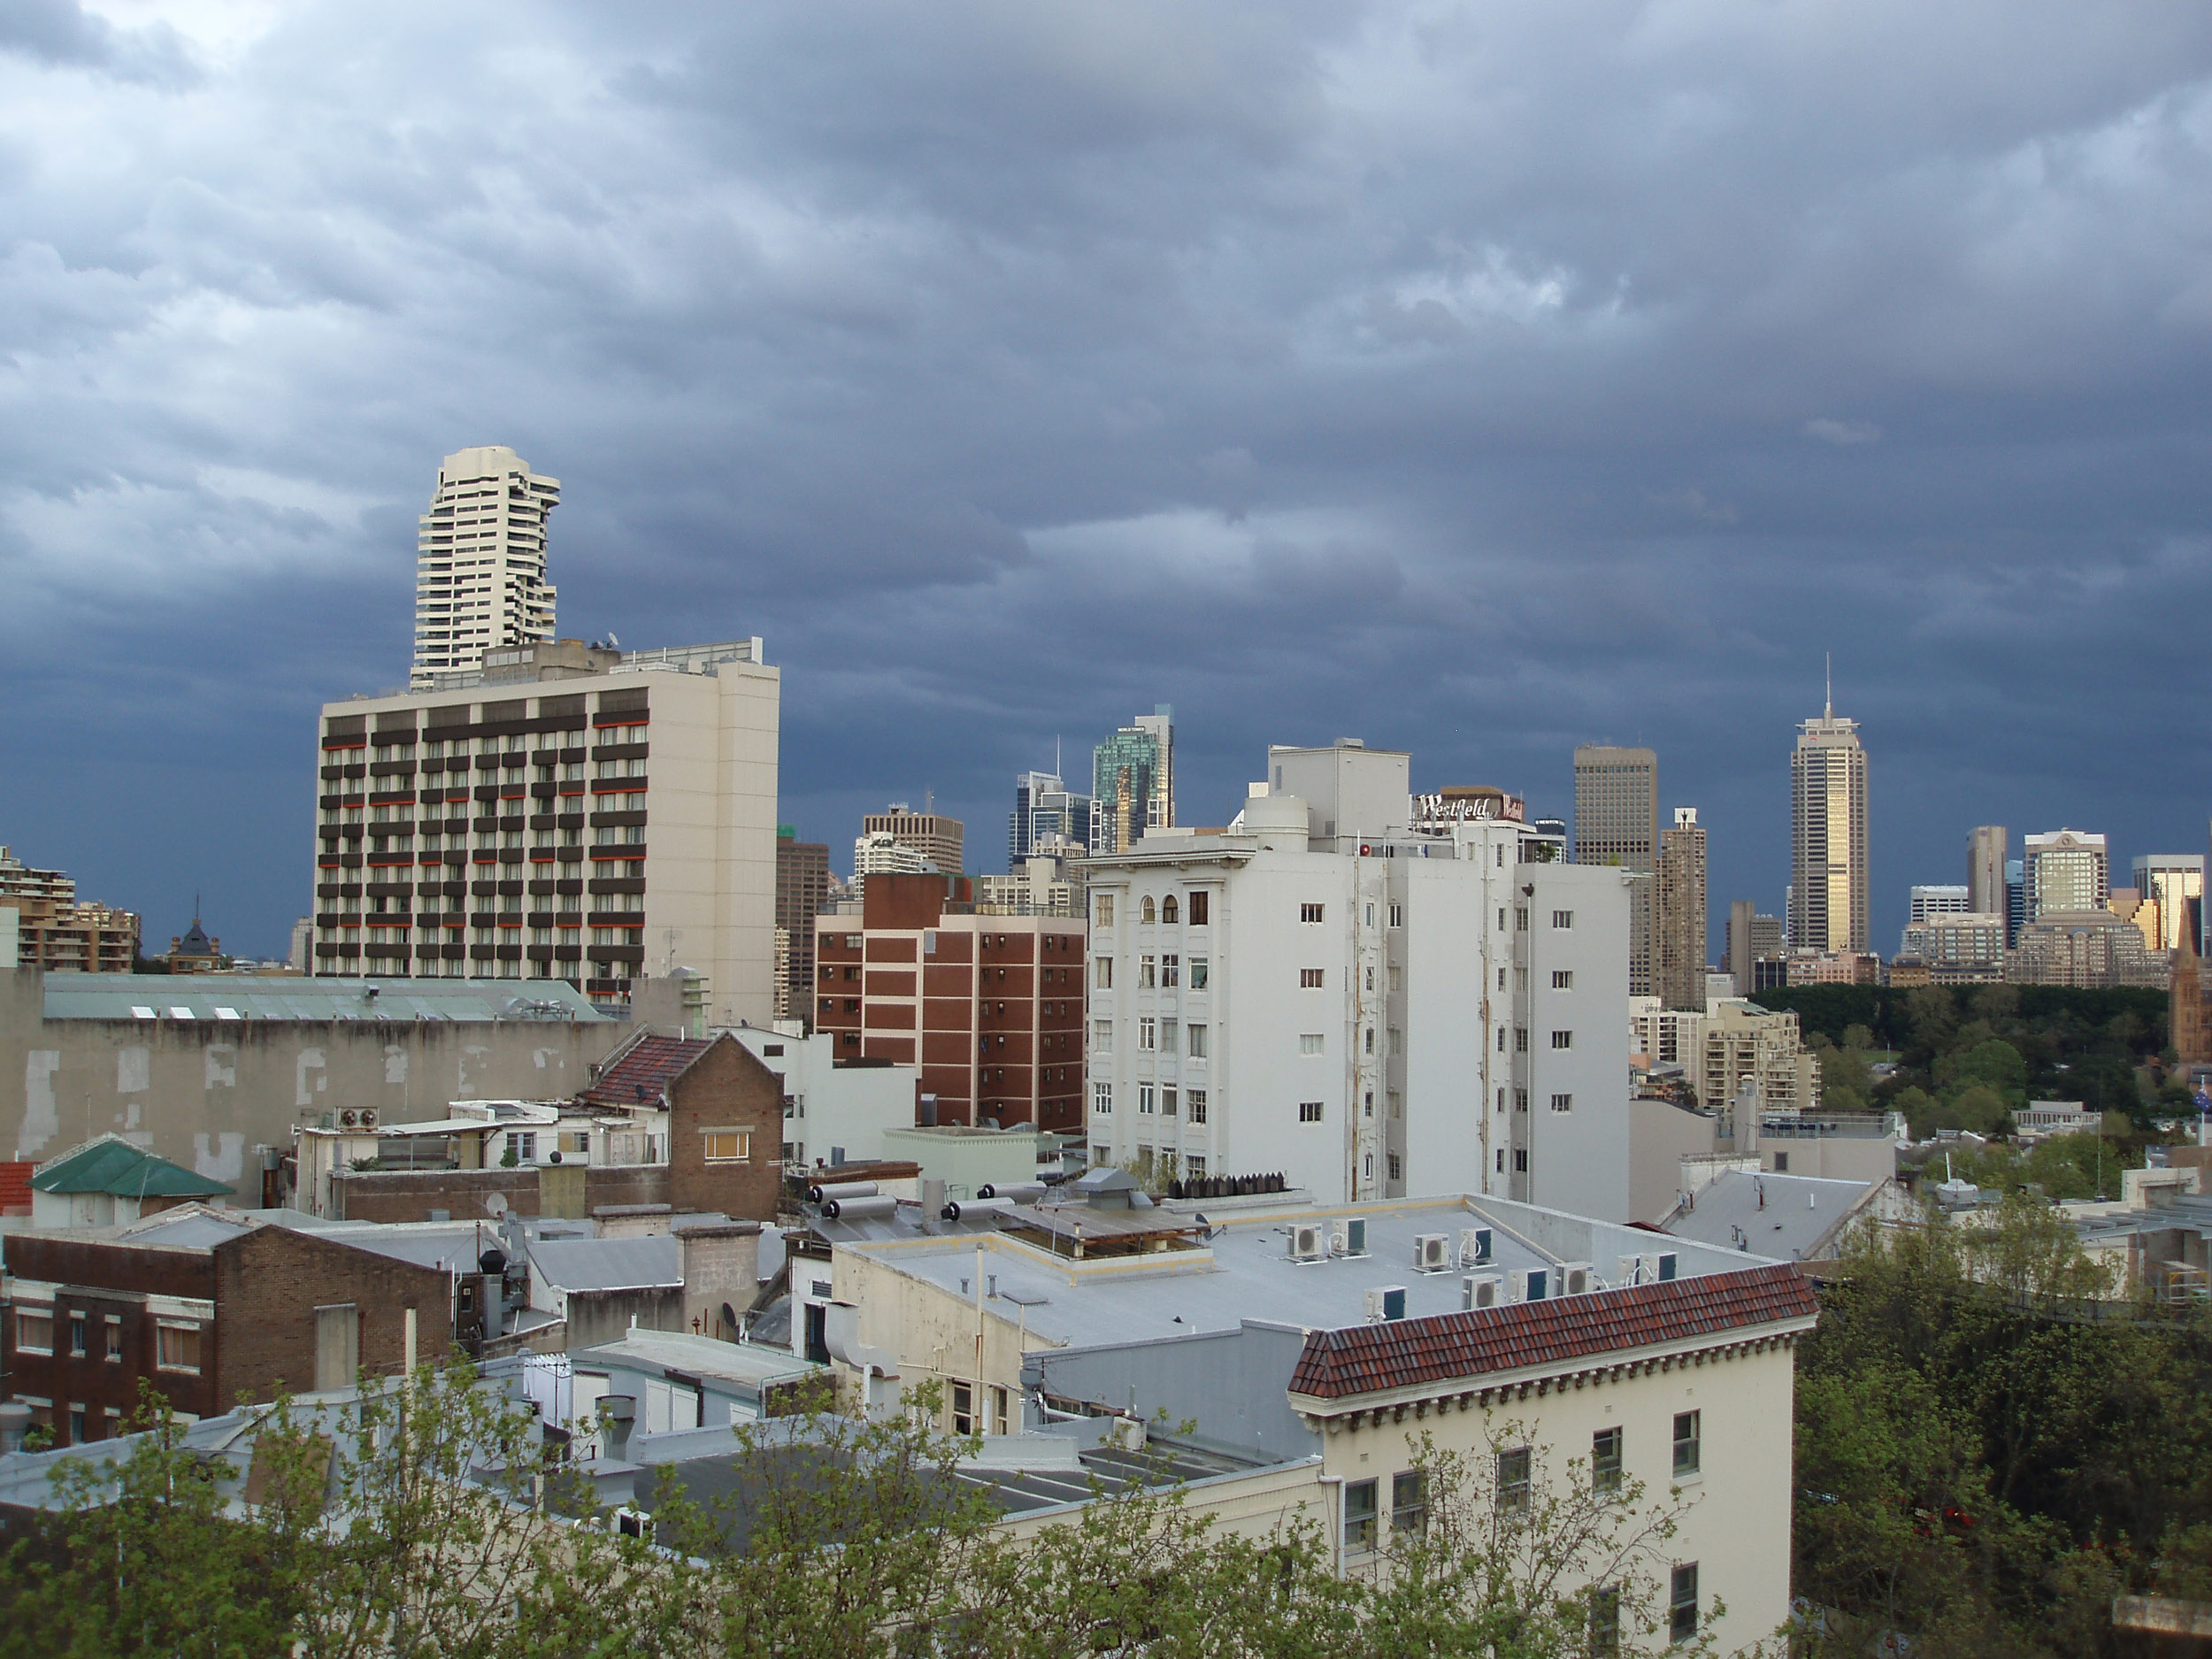 buildings of the sydney city skyline on a stormy day